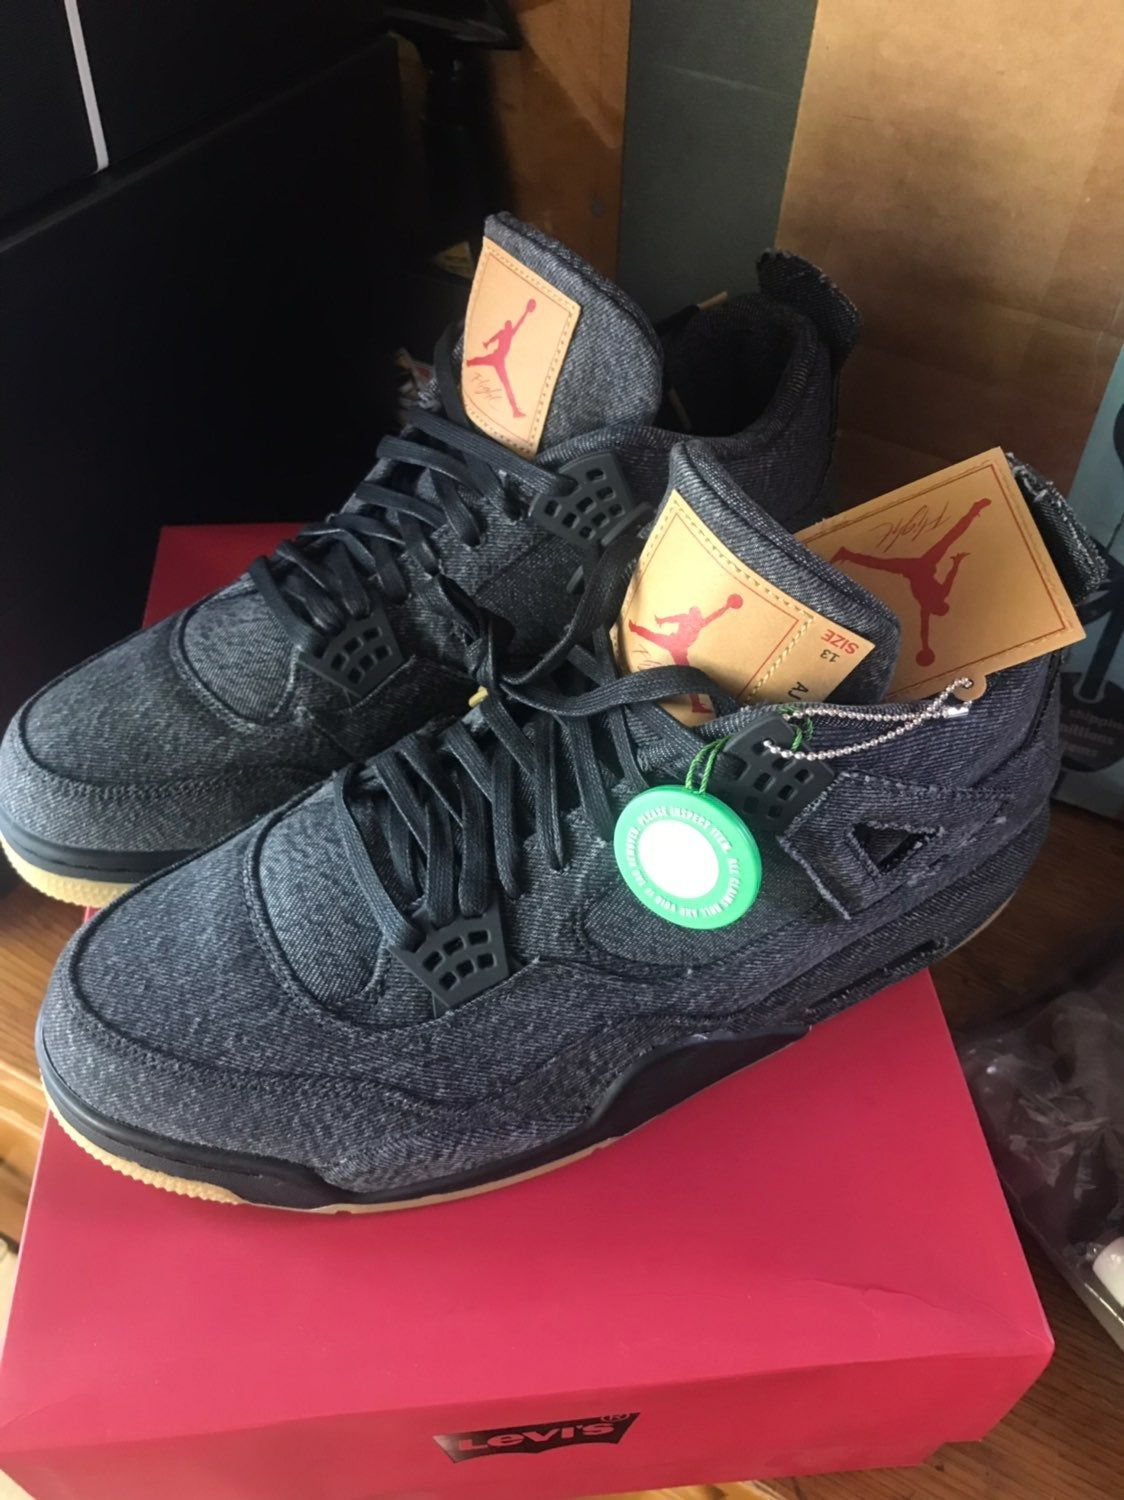 208890bc Black Jordan retro 4 Levi's Deadstock in the box straight from StockX with  receipt. Never